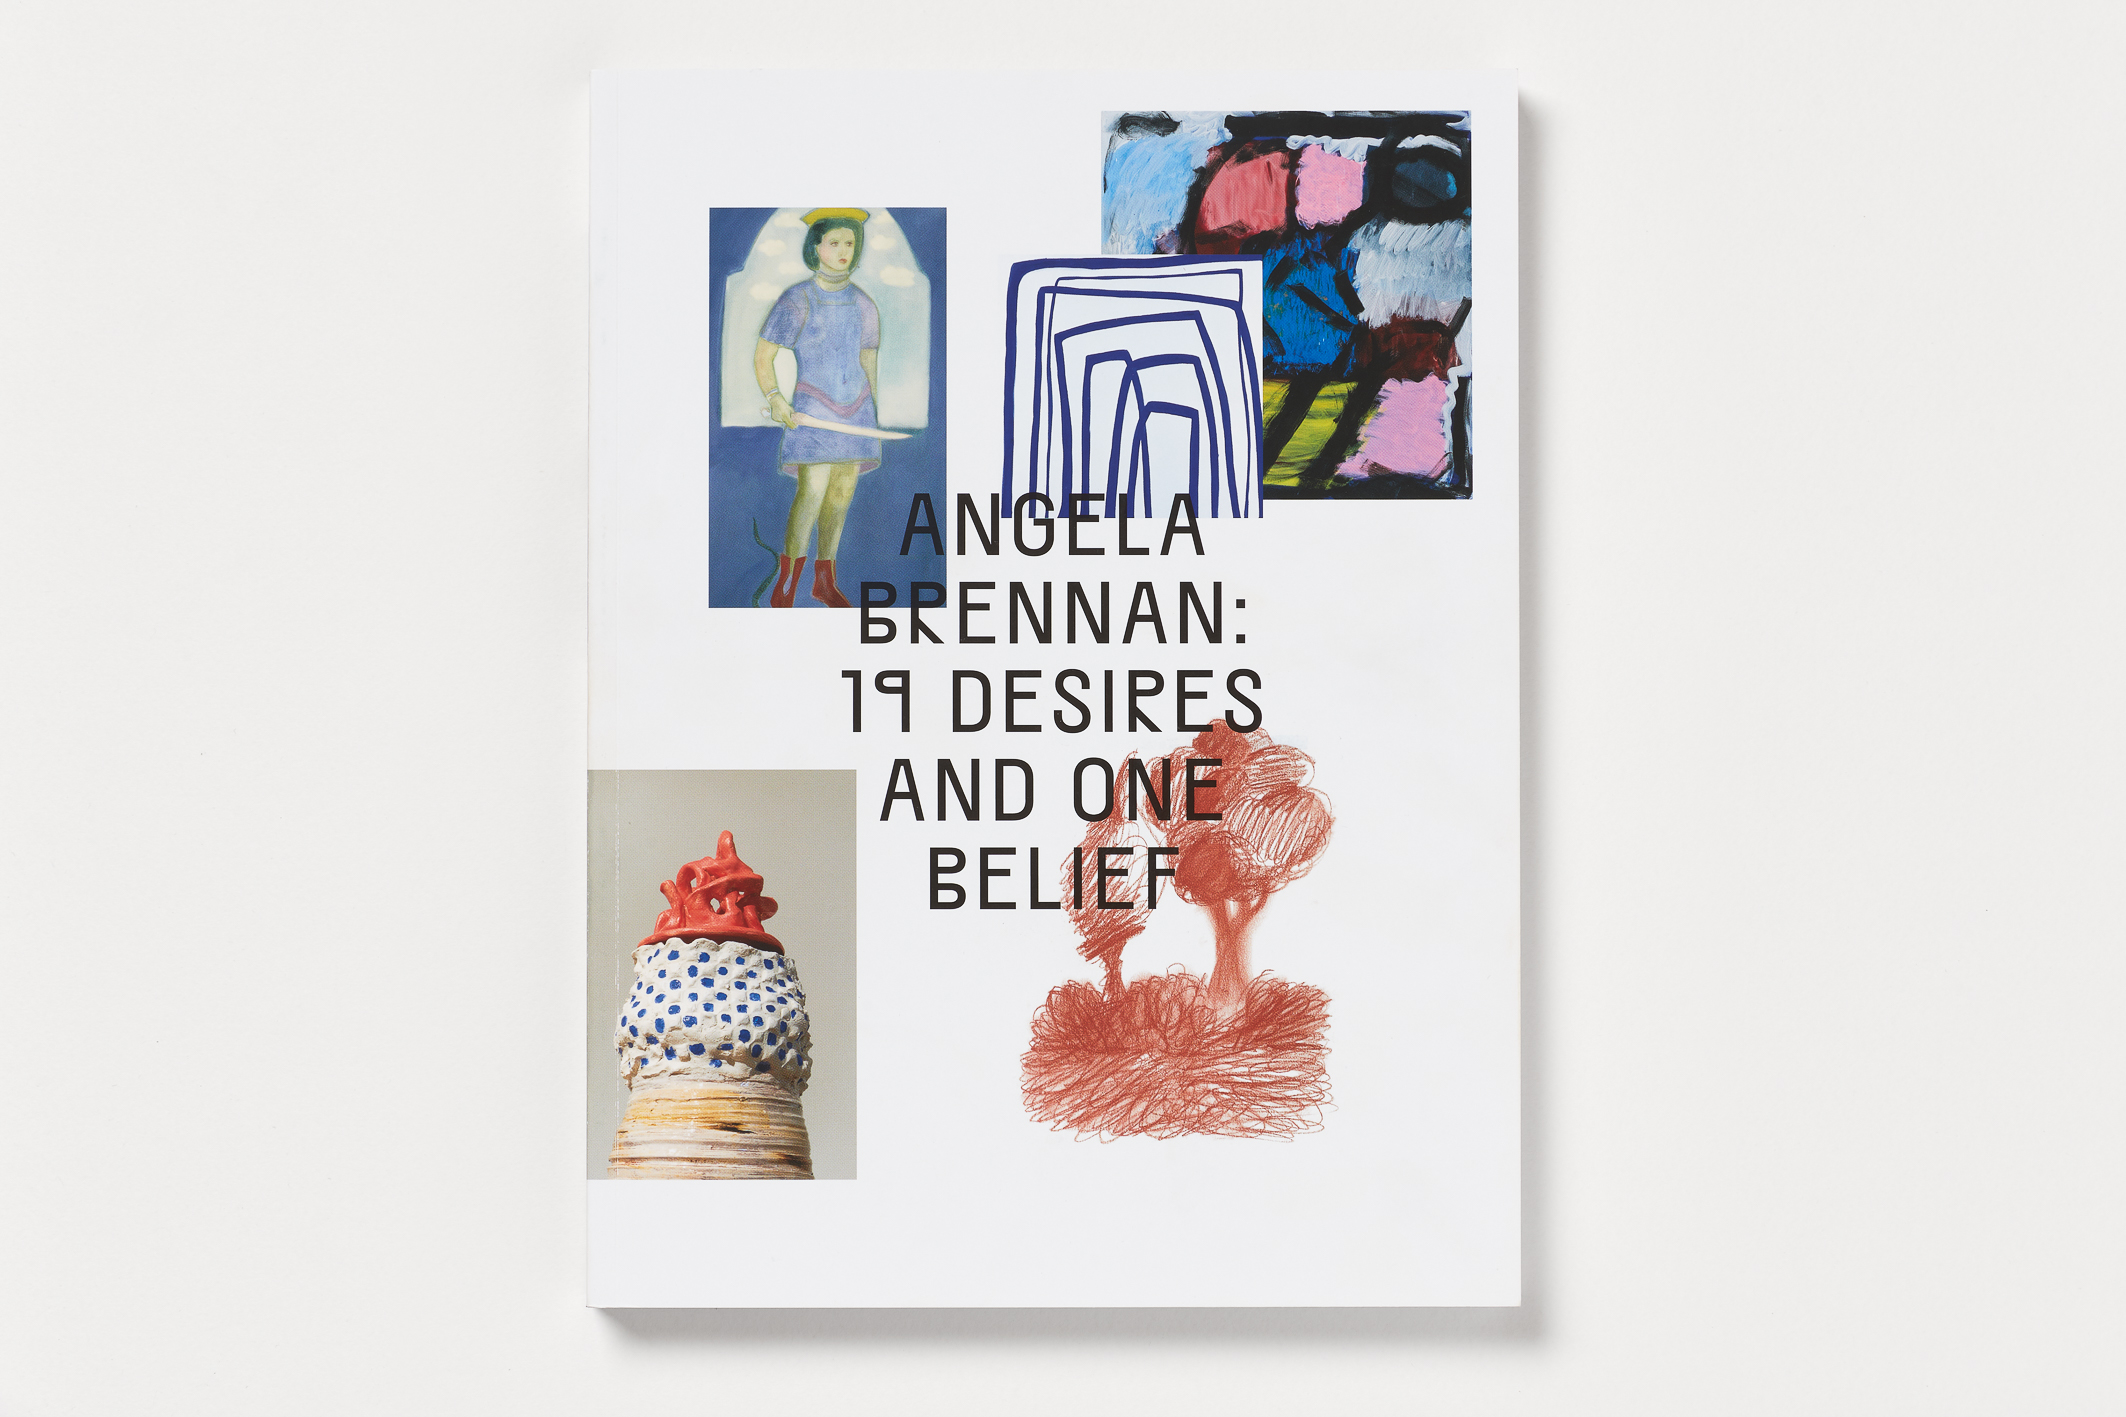 3Ply - Angela Brennan. 19 Desires and One Belief-033.jpg